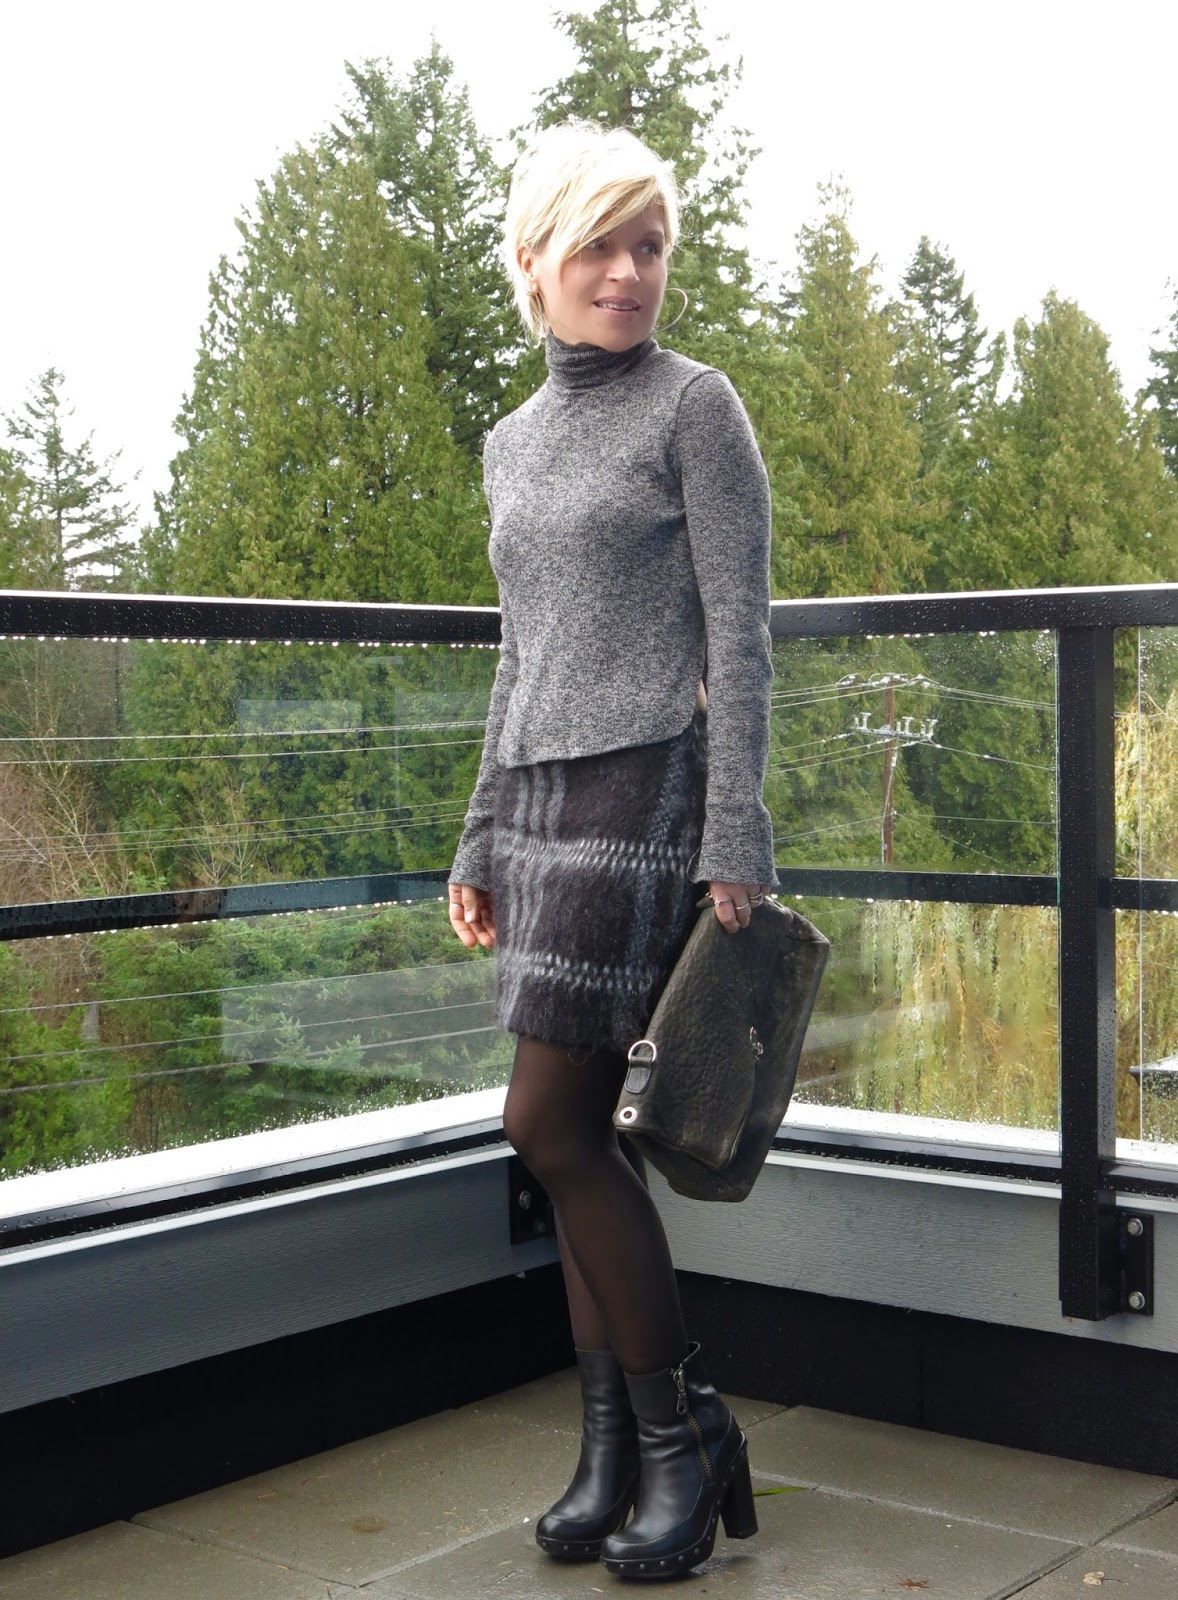 styling a monochromatic look with a turtleneck sweater, plaid mohair skirt, and black tights